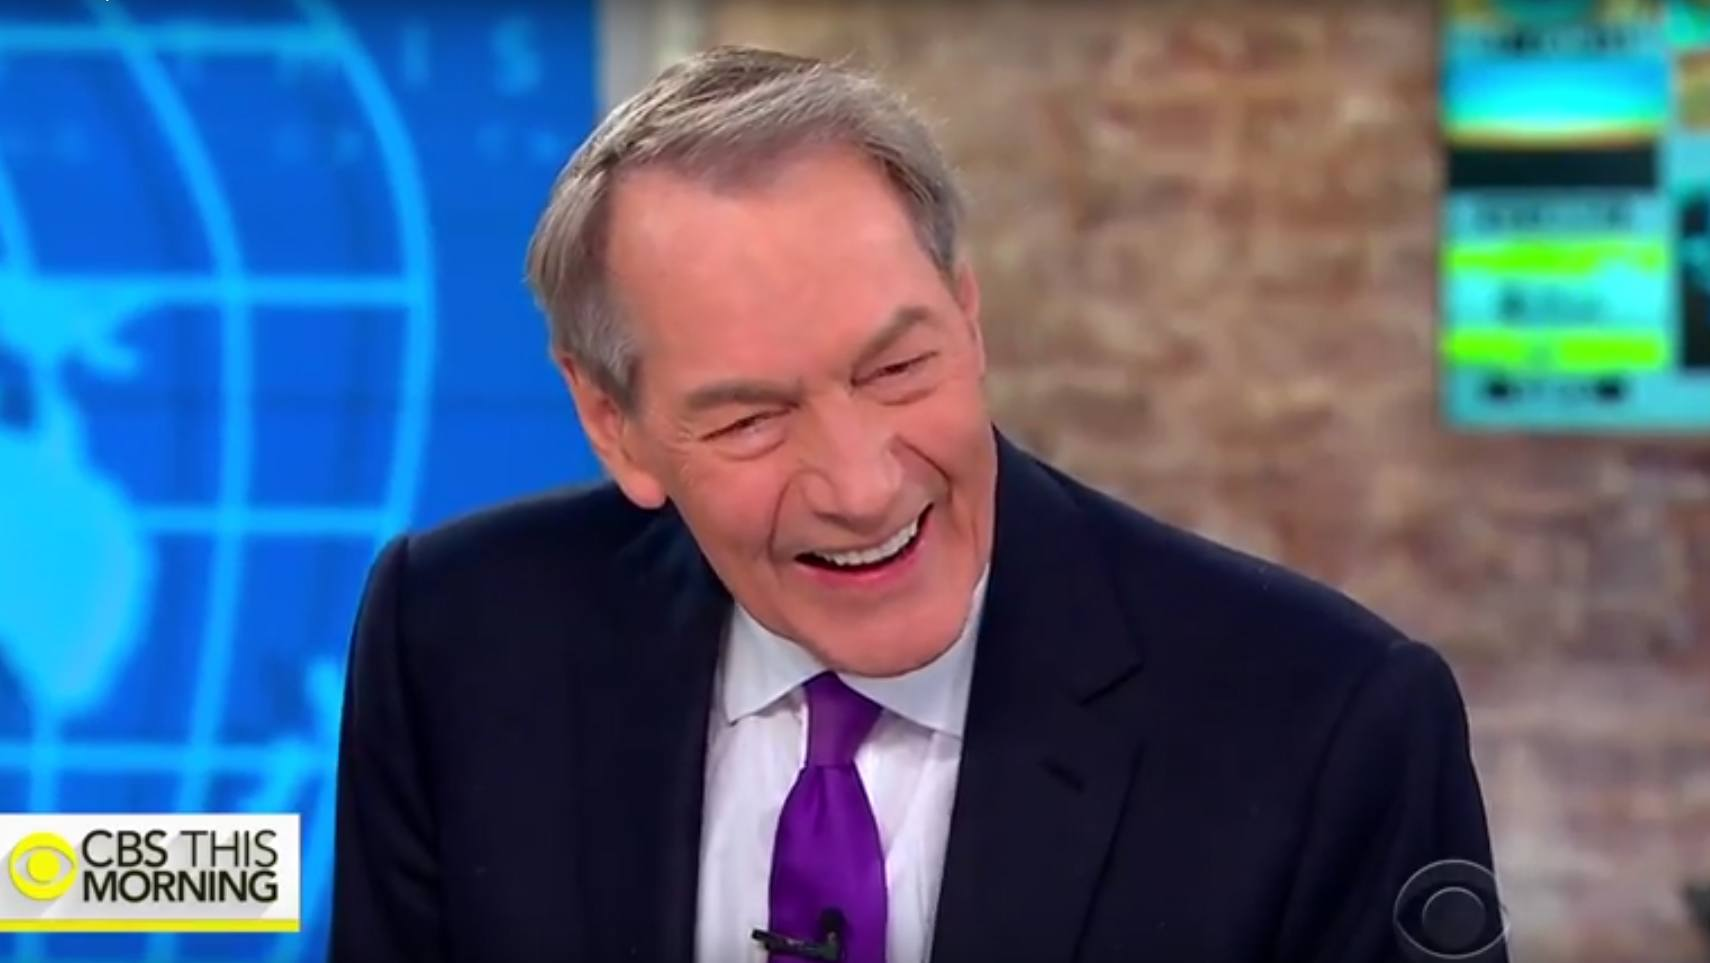 Charlie Rose on CBS This Morning